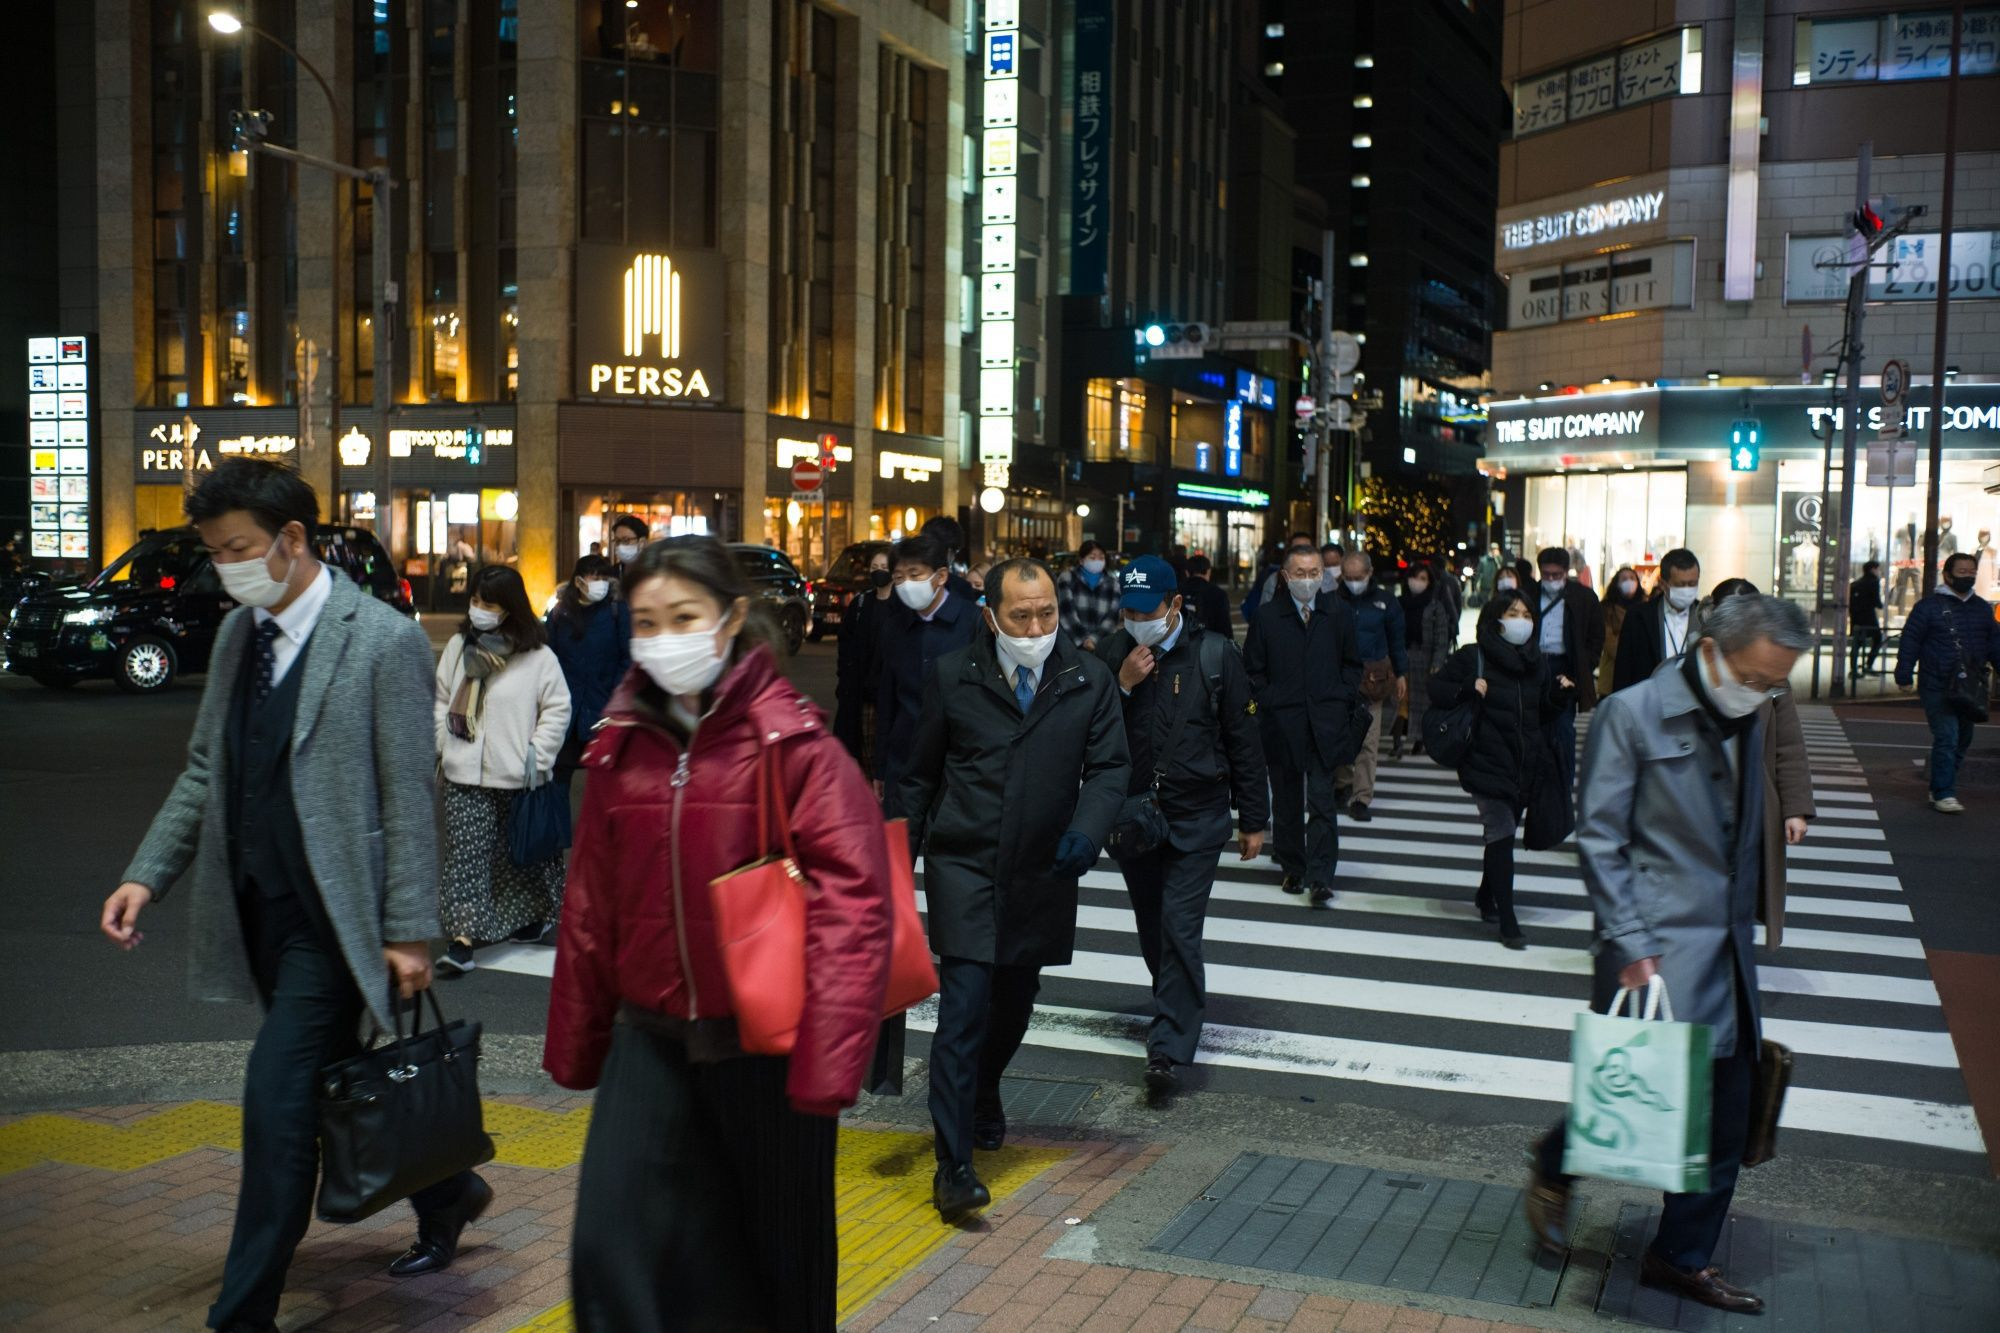 Evening commuters wearing protective masks cross a street in Tokyo, Japan, on Friday, Jan. 8, 2021. The state of emergency over the coronavirus that went into effect Friday for Tokyo and its surrounding area will weigh on Japans economy this quarter, said Japan's Finance Minister Taro Aso. Photographer: Kentaro Takahashi/Bloomberg